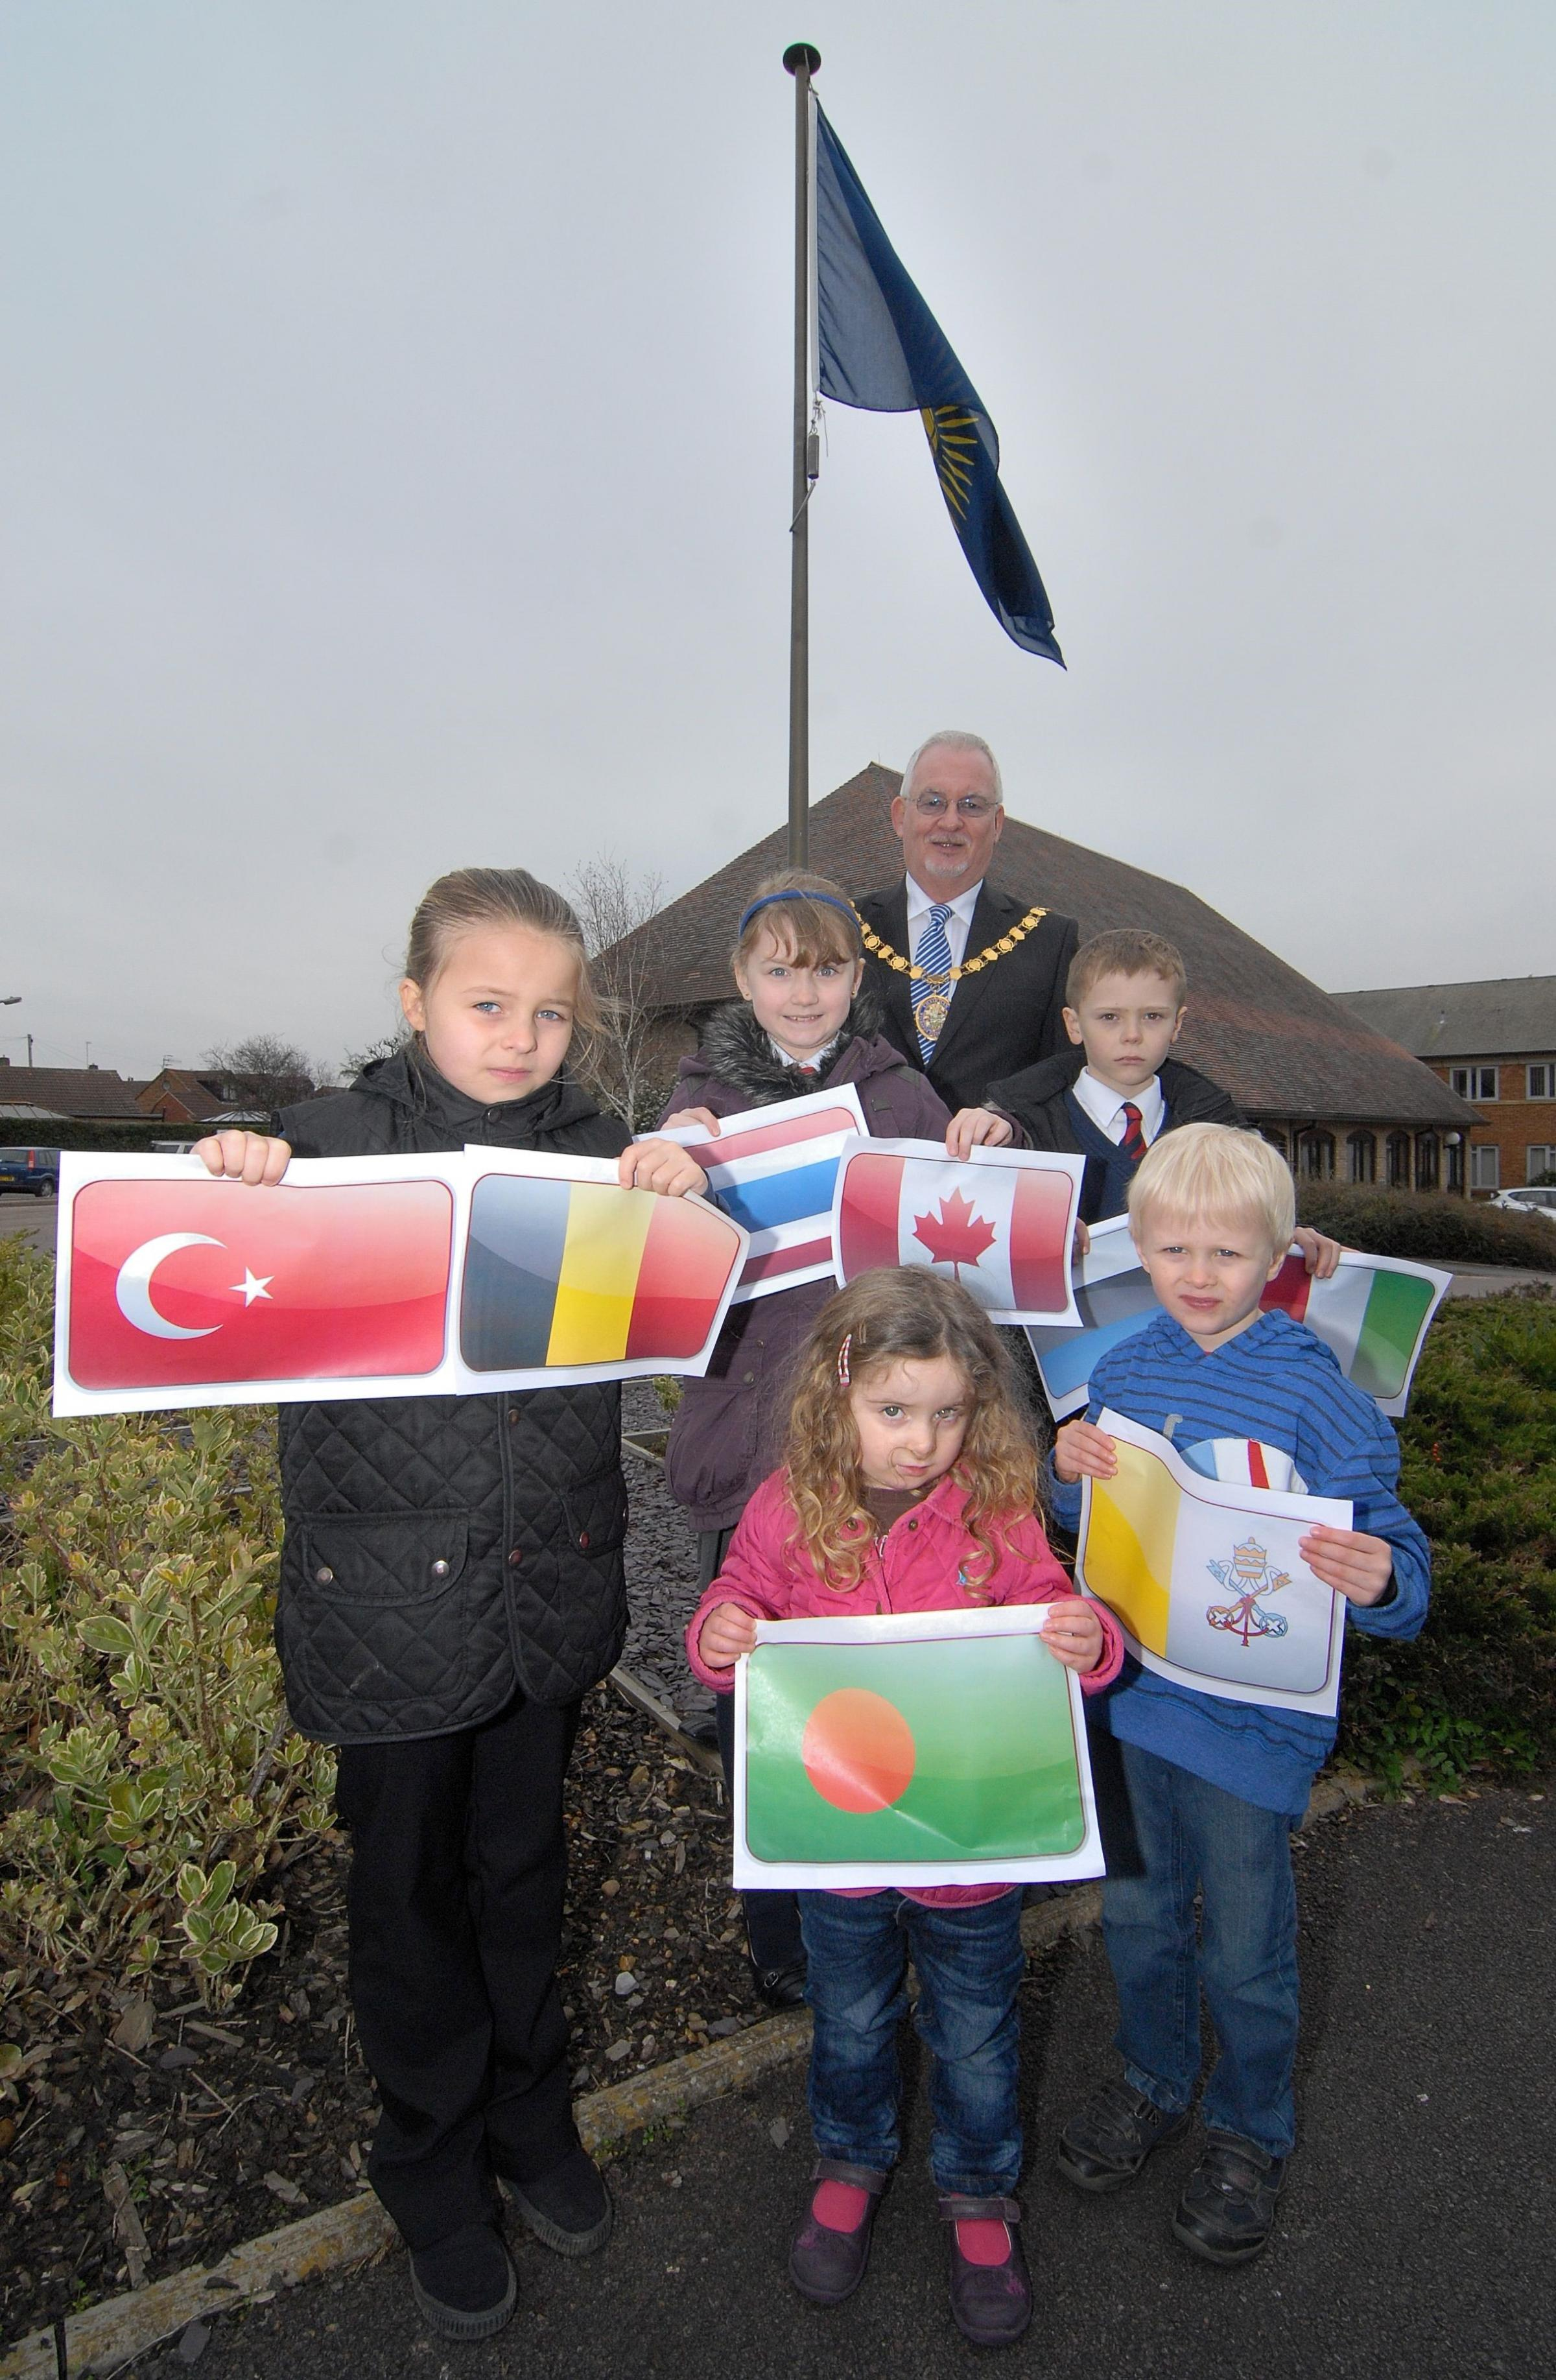 Council flies flag for commonwealth